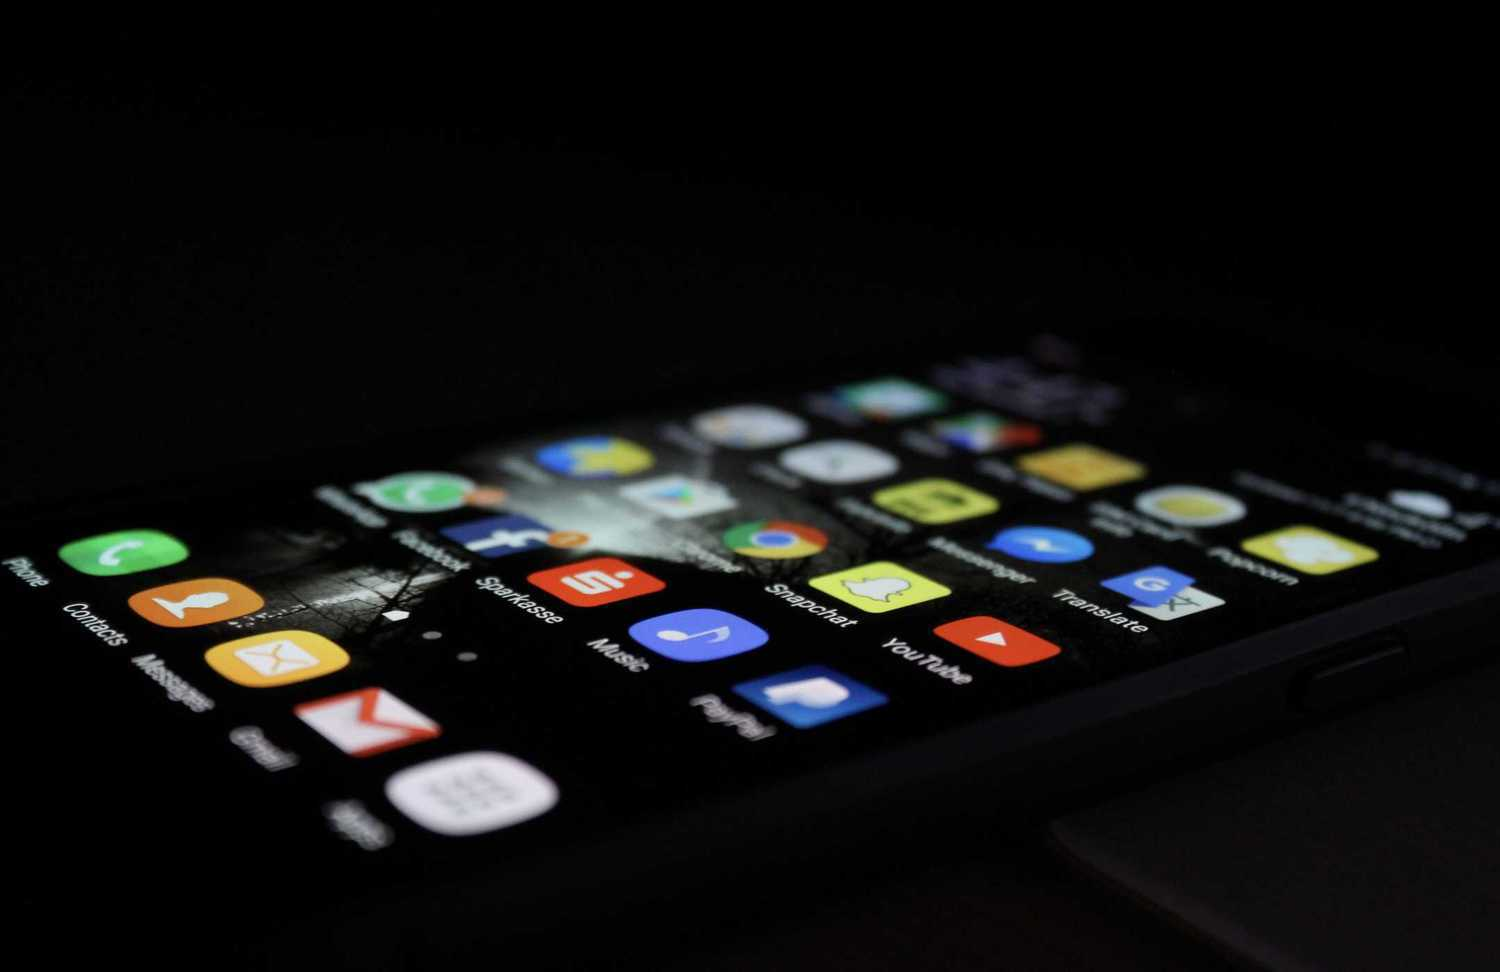 New to App Development? Here Are Some Tips to Get Started